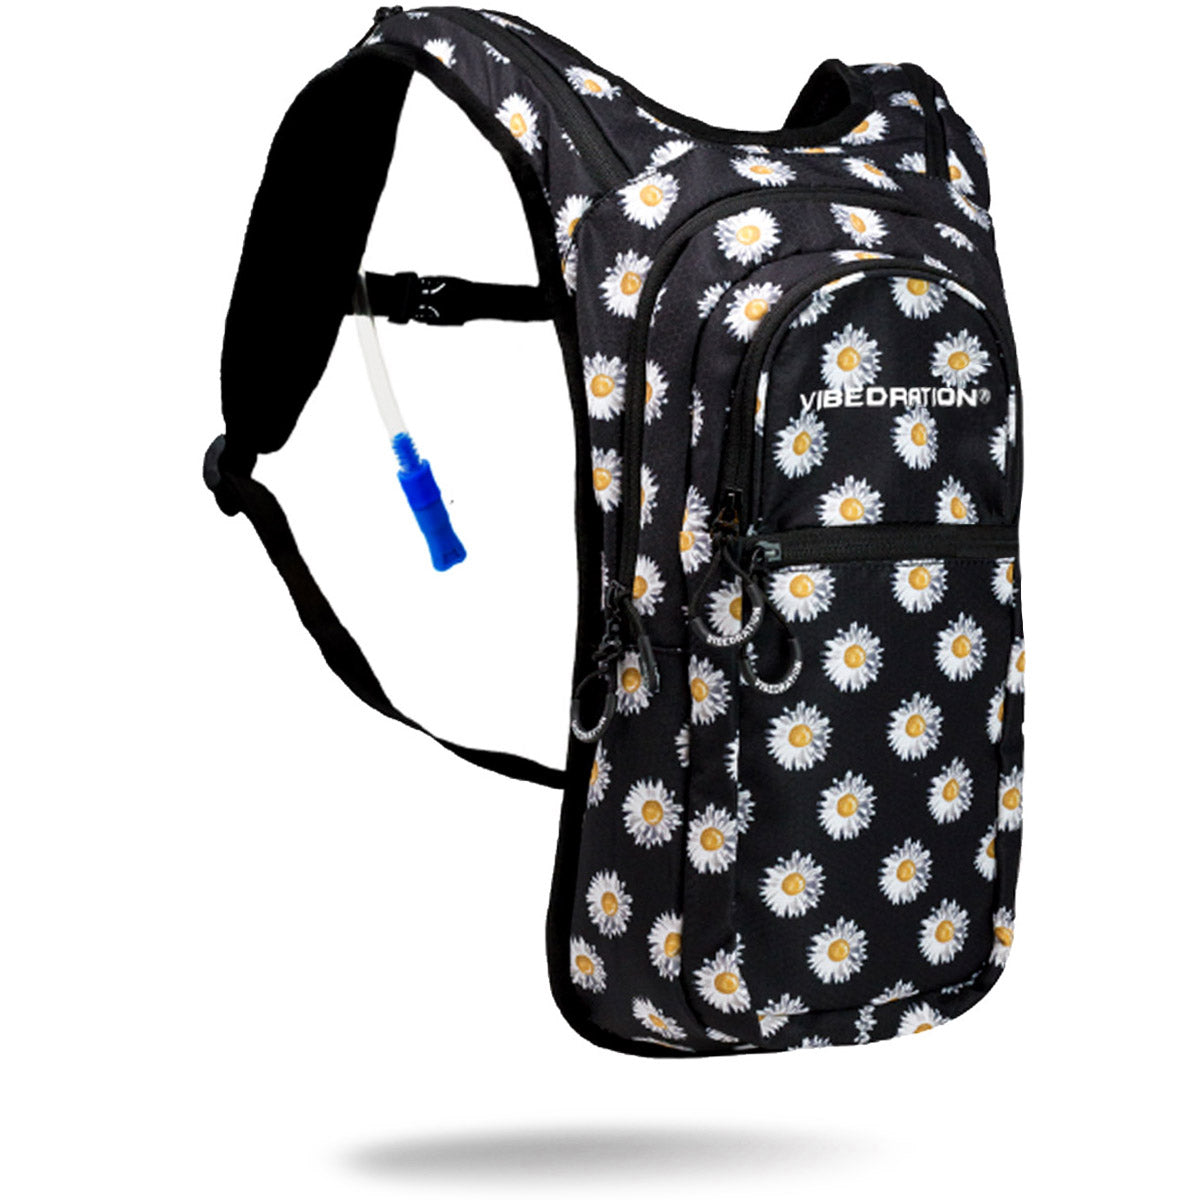 Two liter black hydration pack with white daisies printed